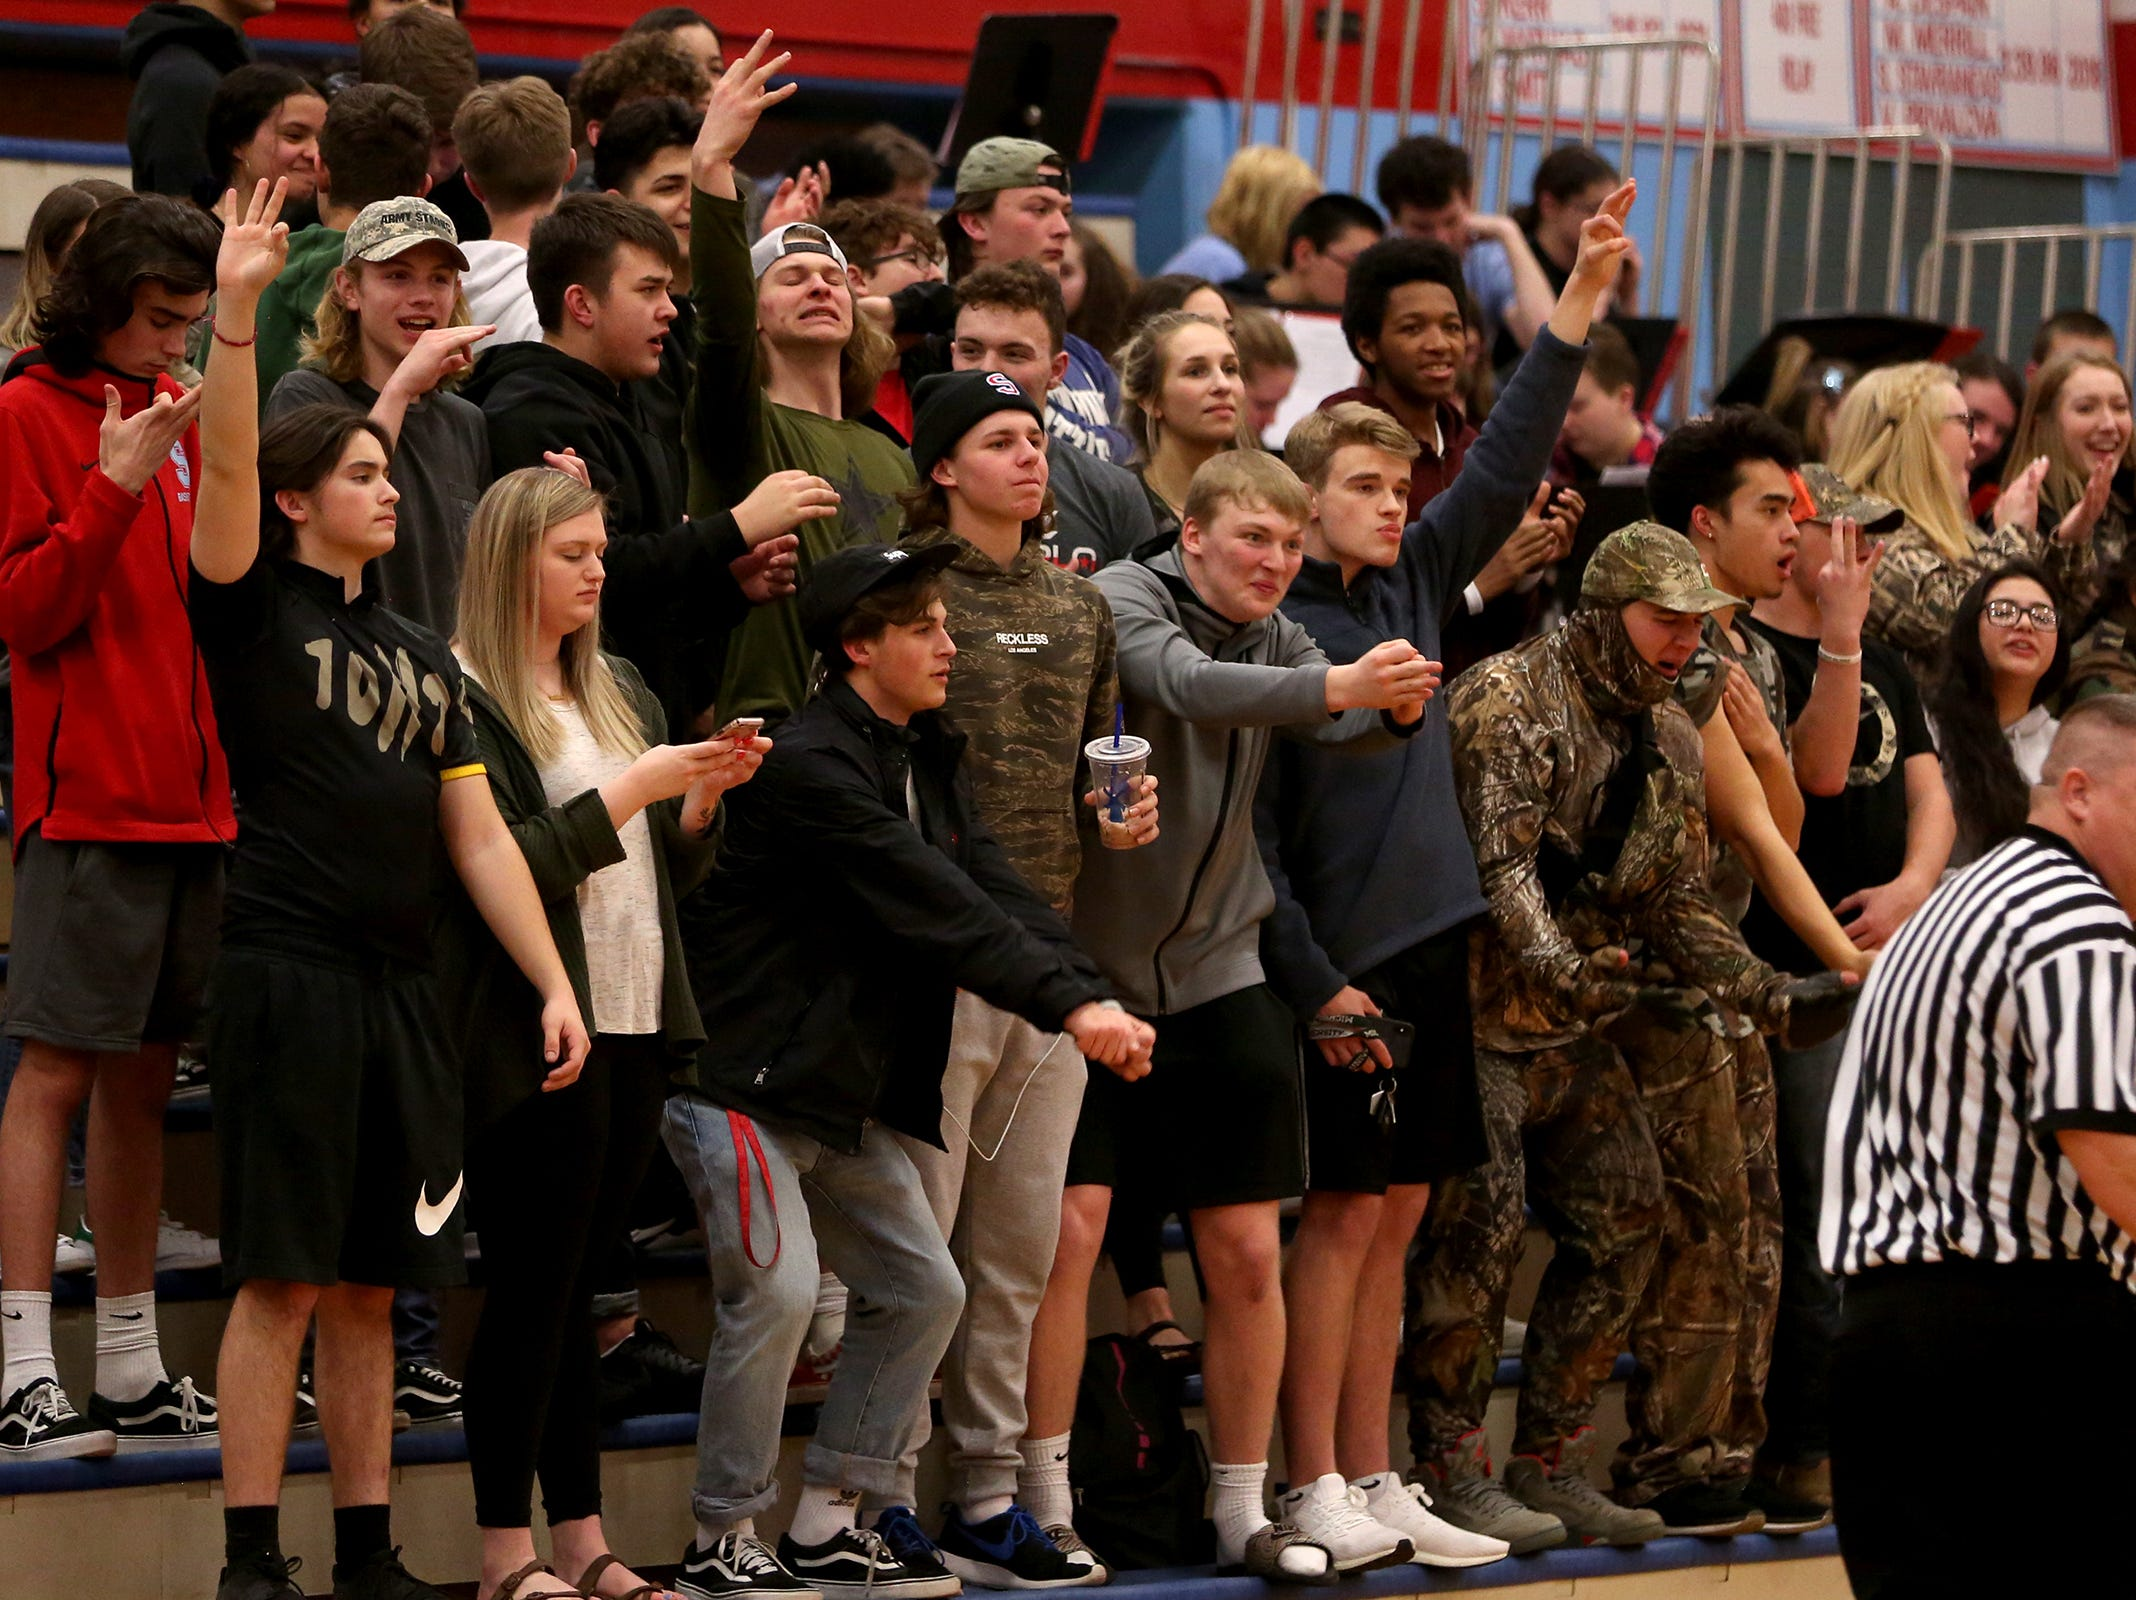 South Salem's students, dressed in camouflage, cheer on their team during the South Salem vs. Mountainside girls basketball OSAA playoff game in Salem on Thursday, Feb. 28, 2019.